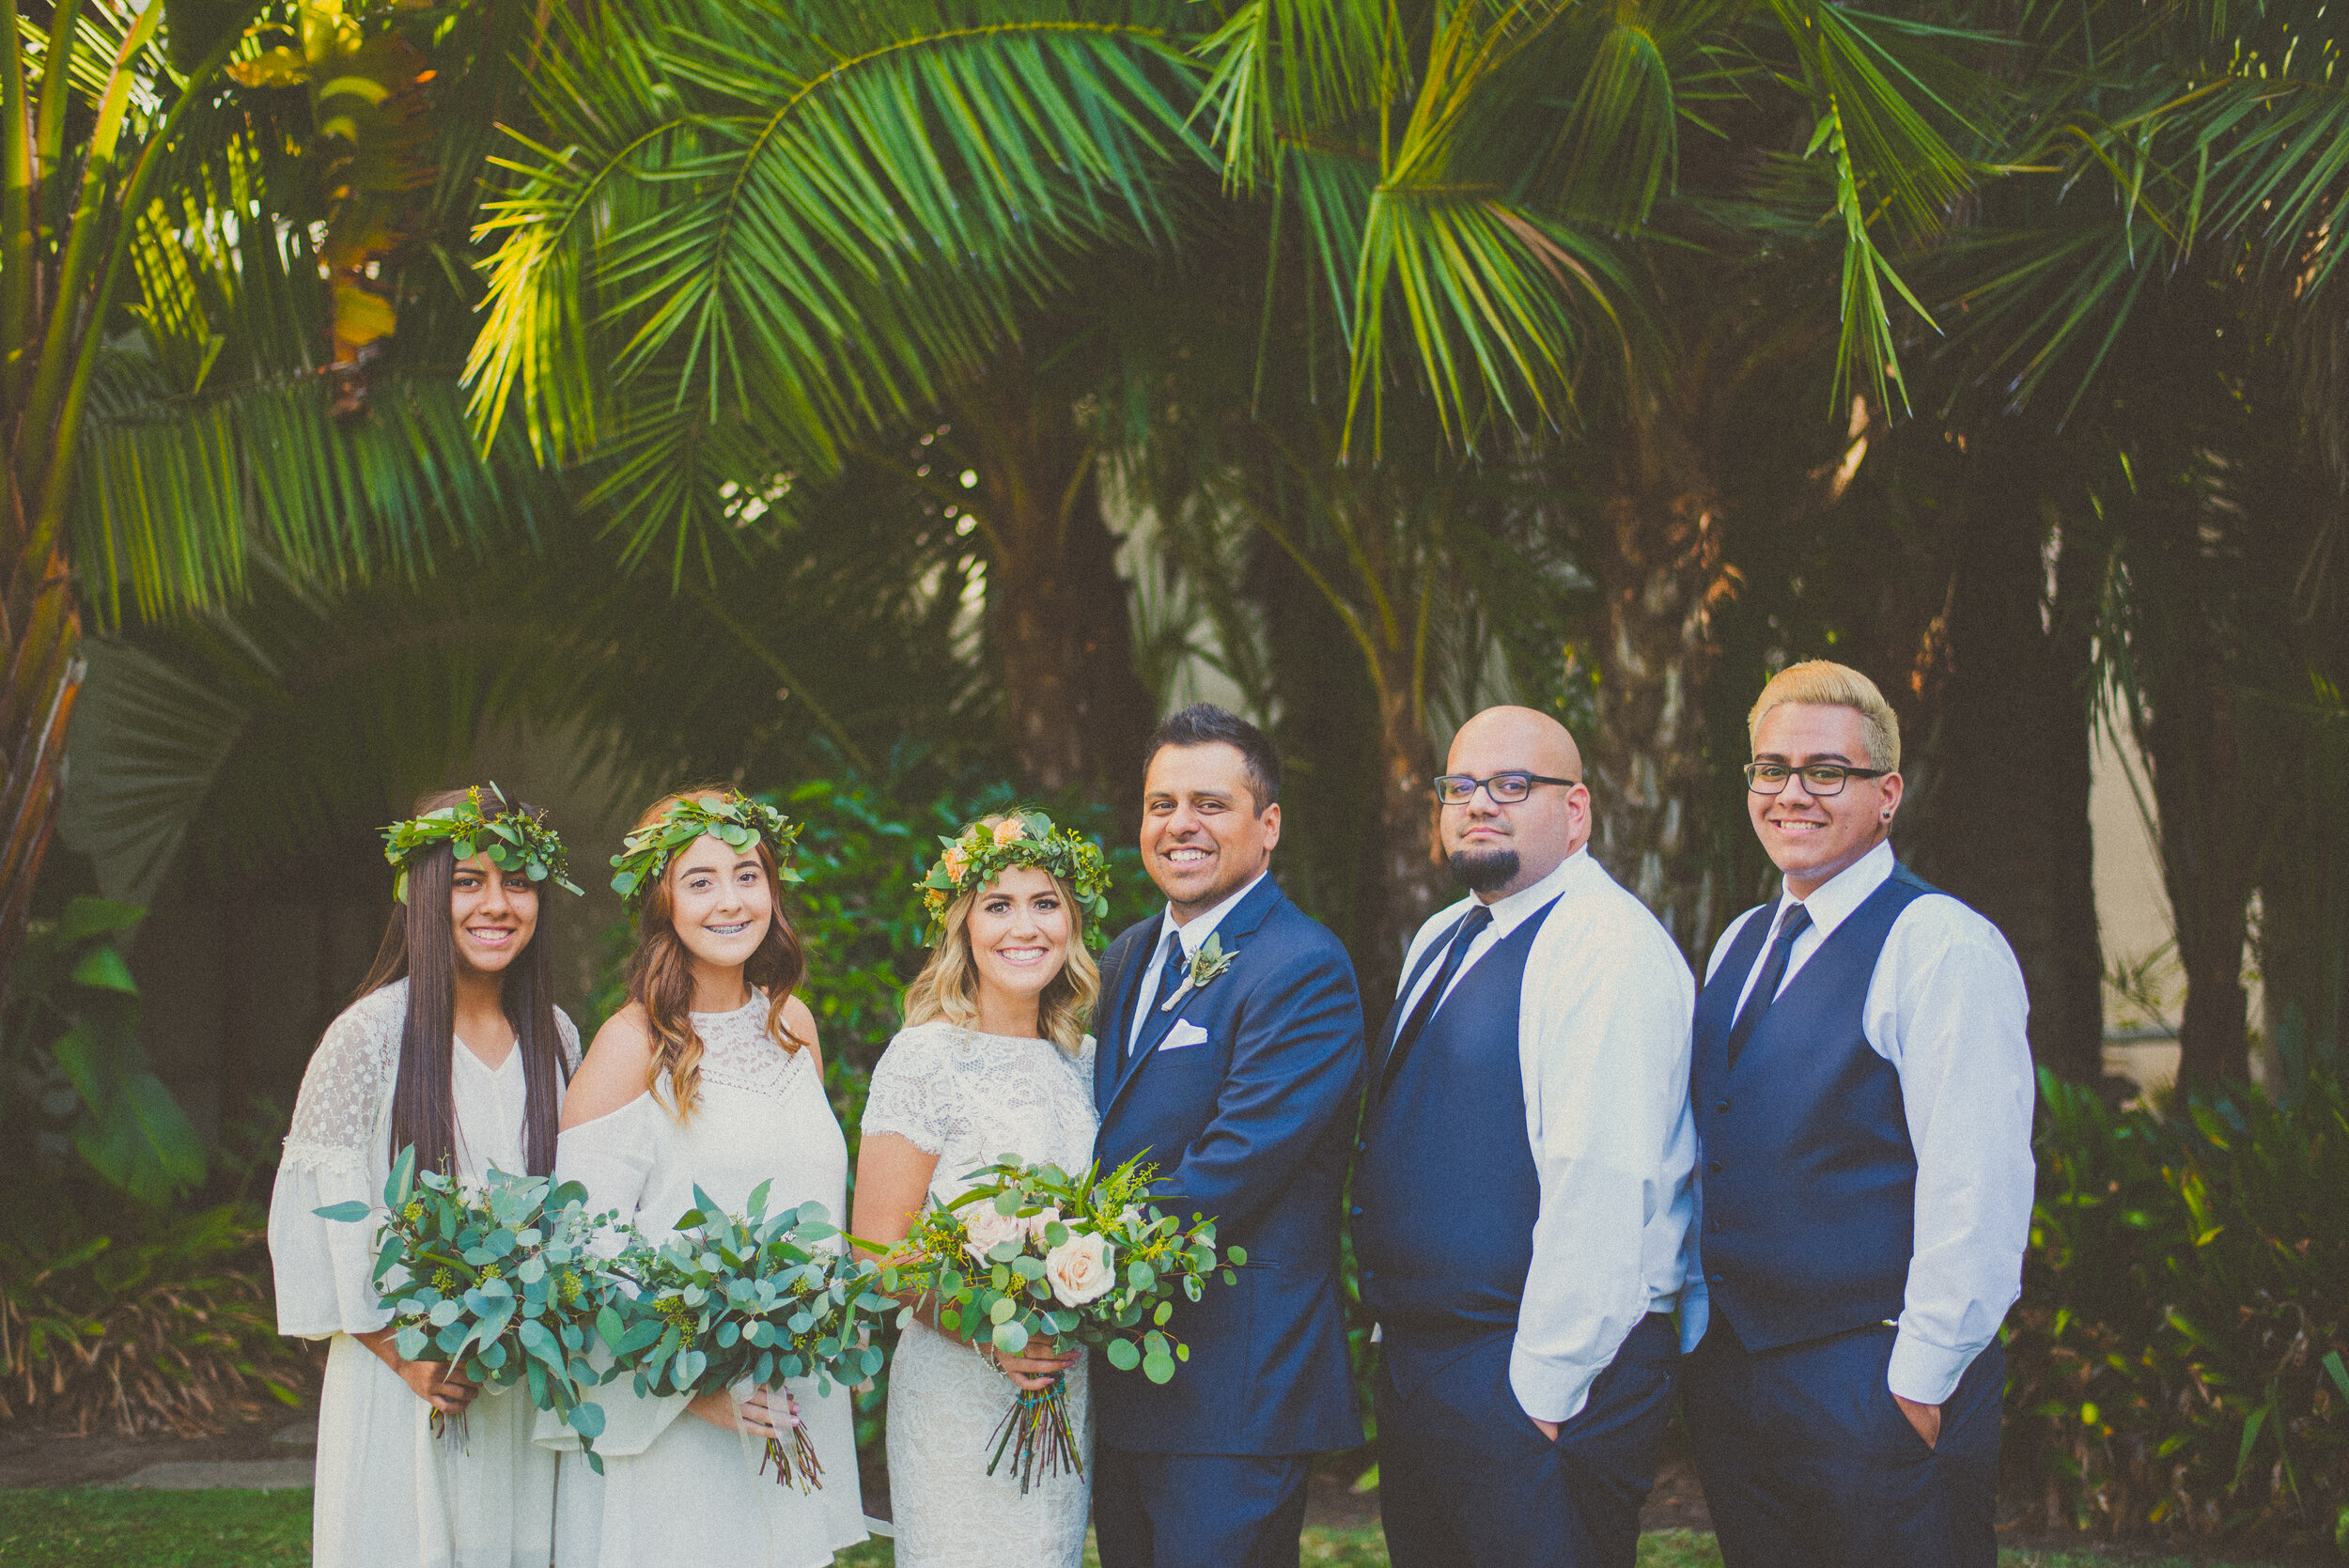 Trejo Wedding - Family-Friend Portraits-21.jpg